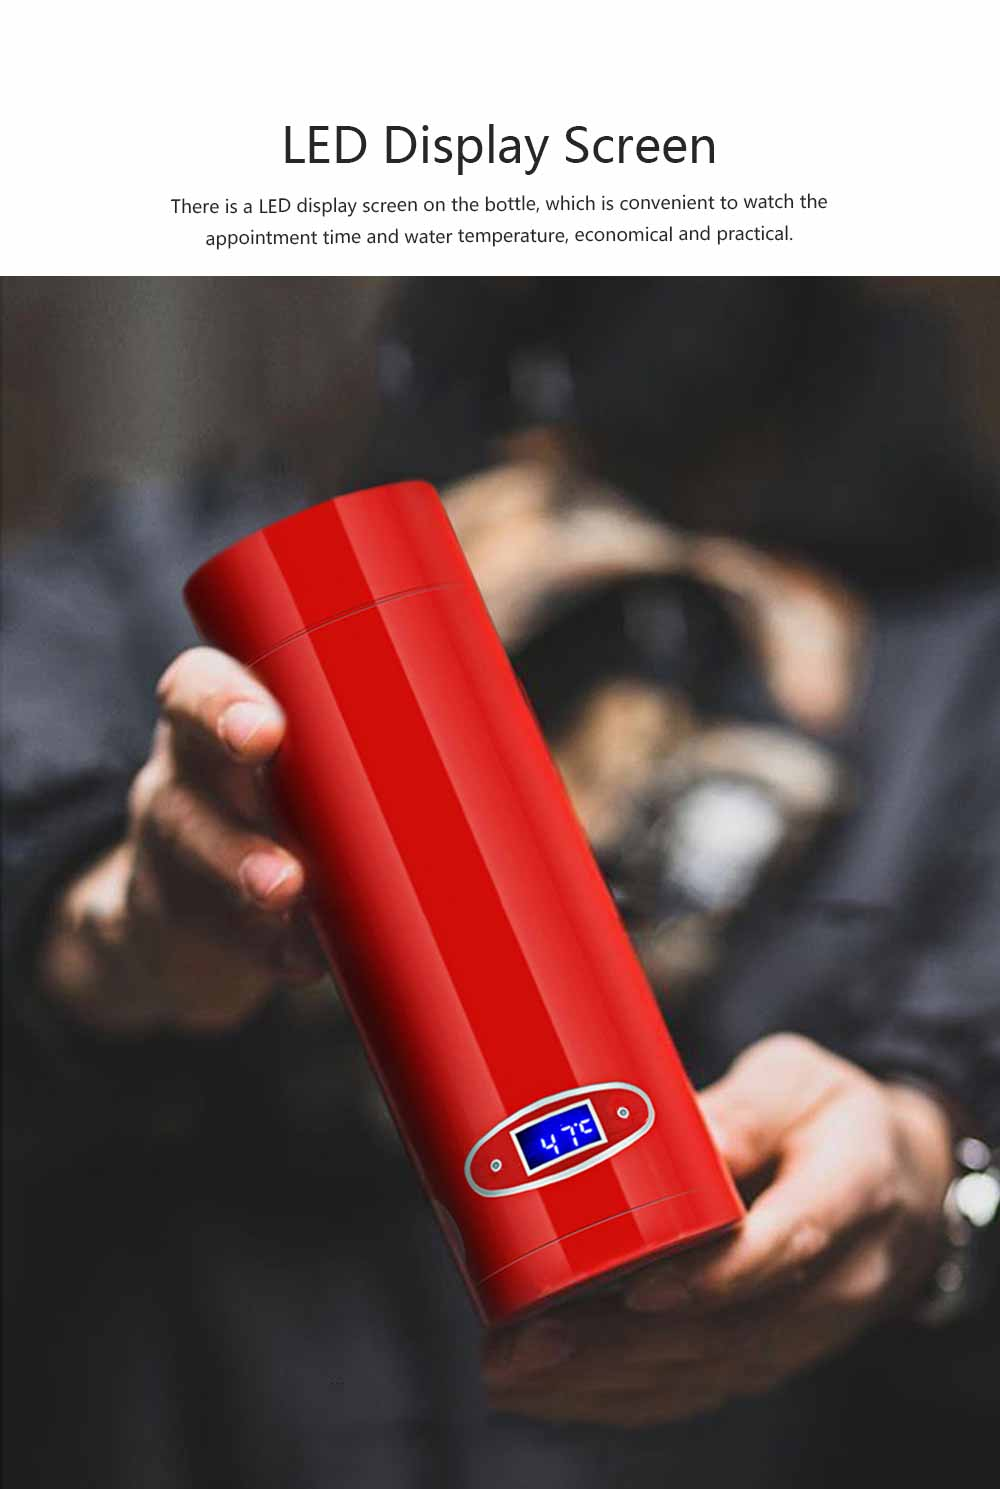 Portable Led Electric Heating Cup Intelligent Stainless Steel Thermos Cup 304 Stainless Steel 55 Degree Constant Temperature Hot Water Cup 4